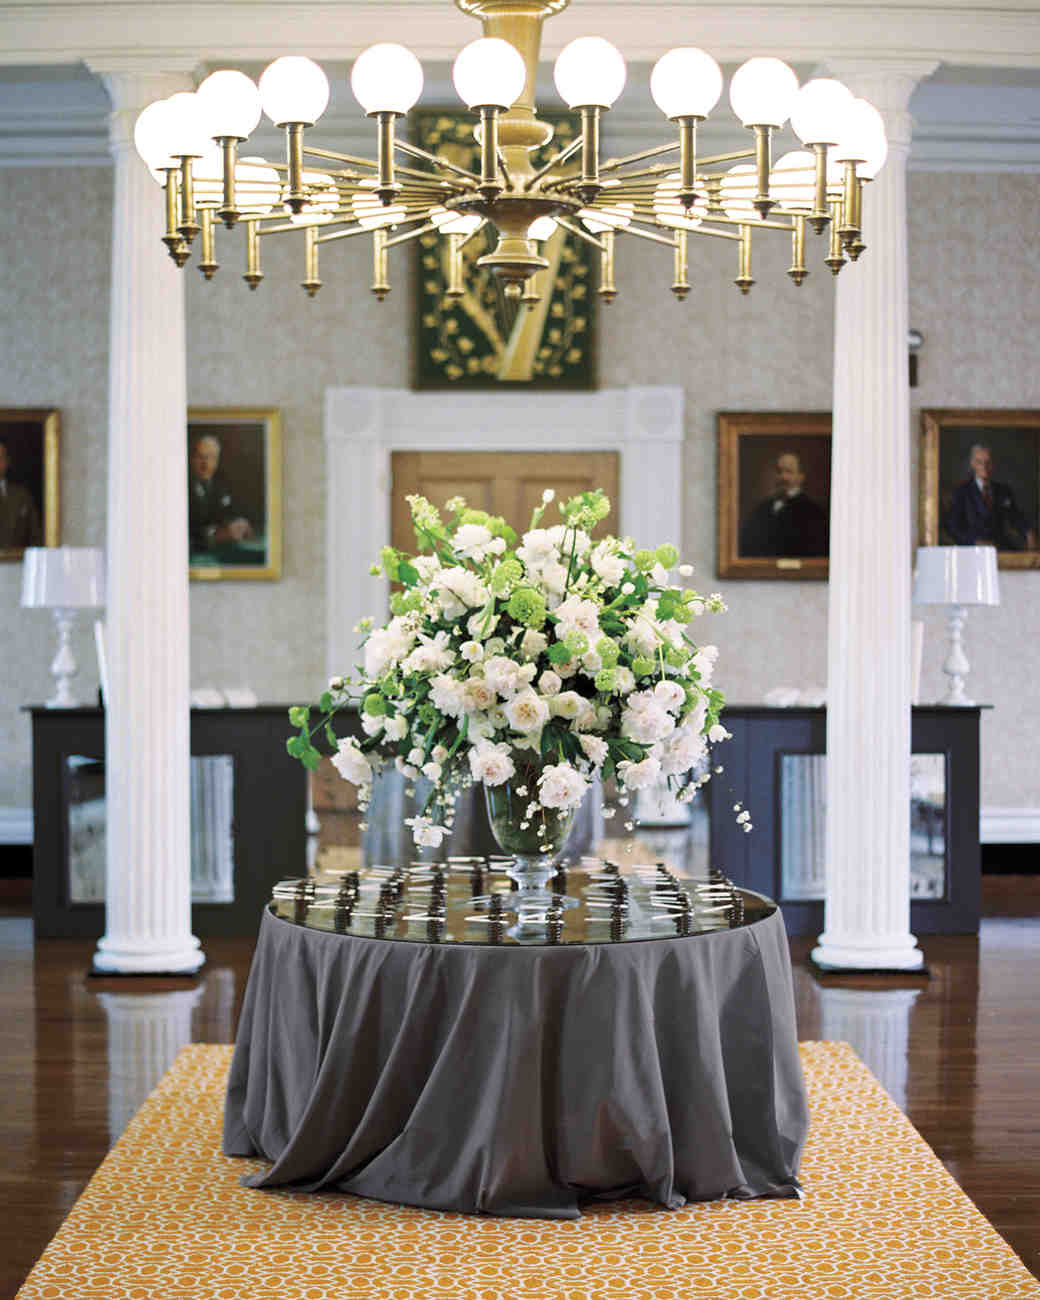 Wedding reception entrance decor - Dramatic Entrance